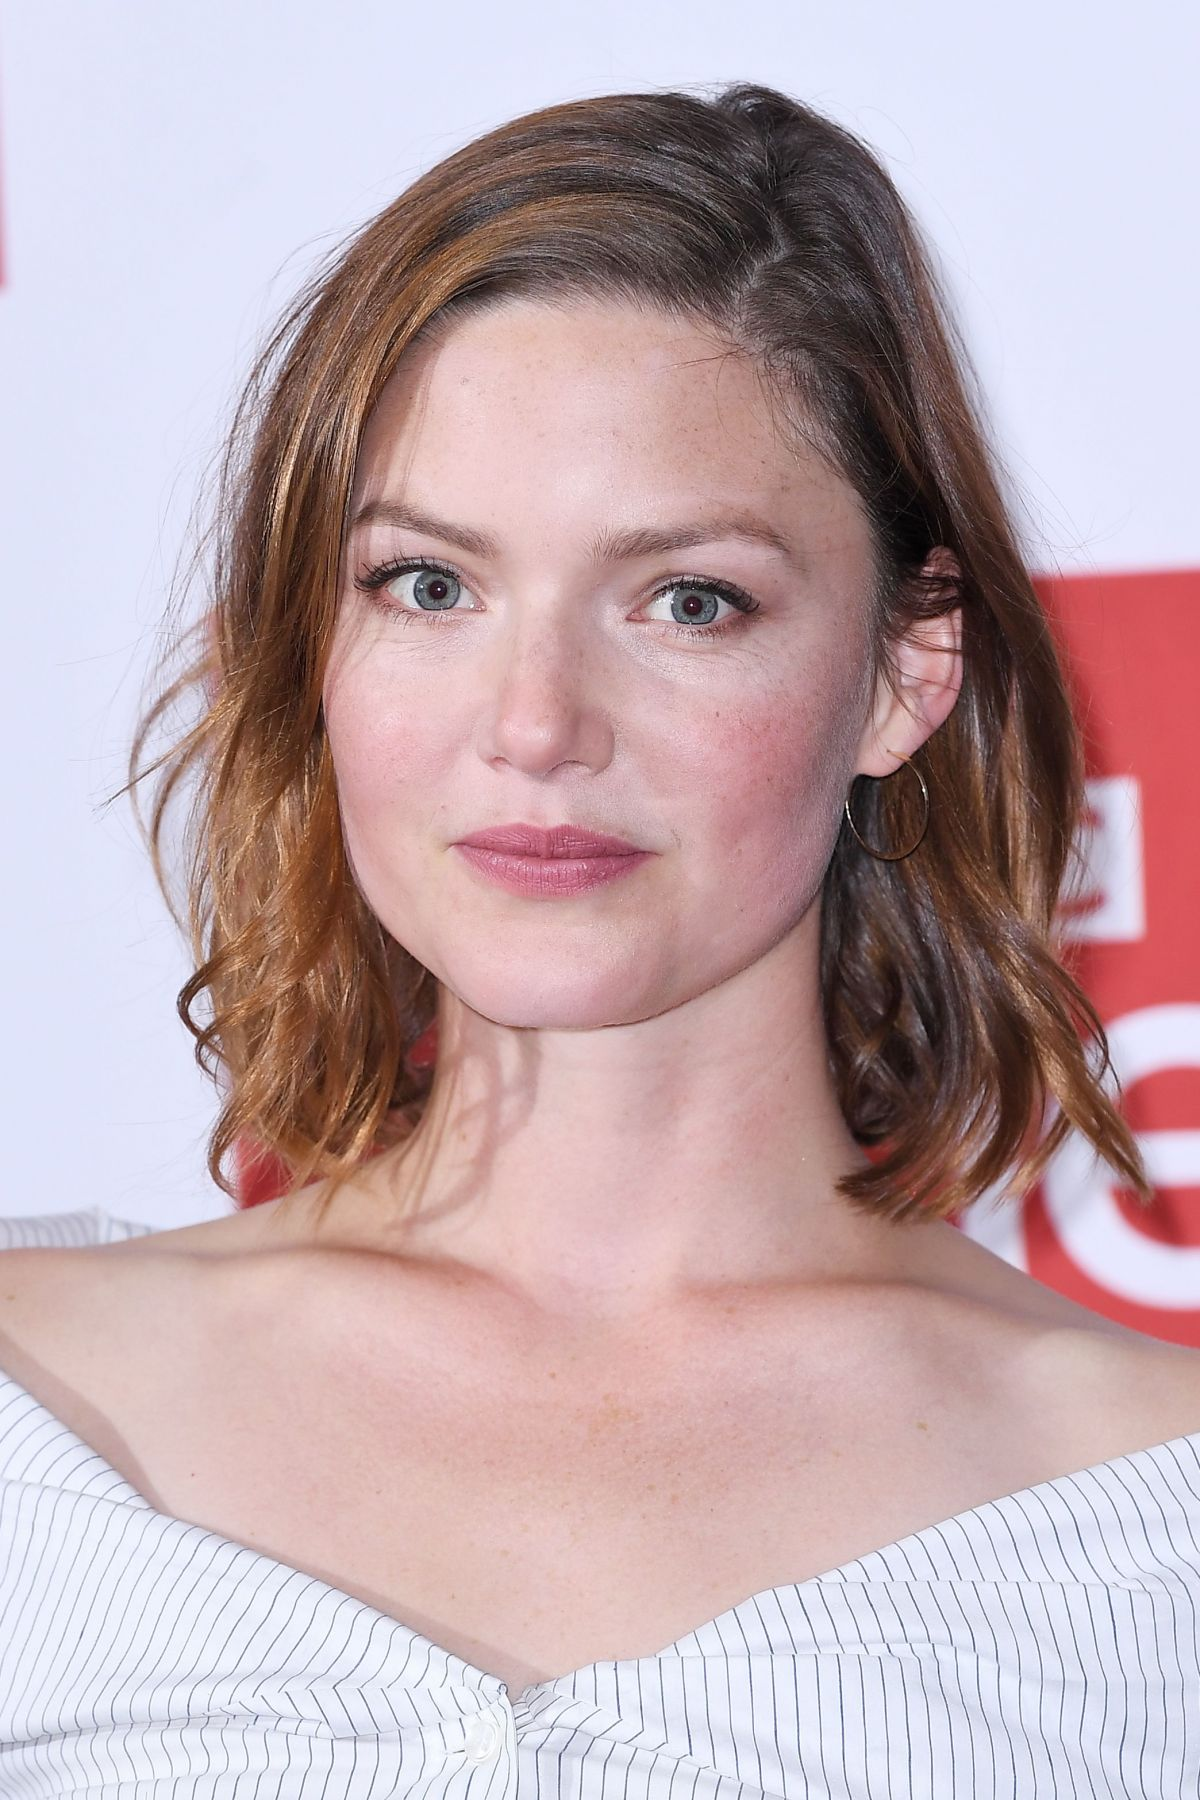 HOLLIDAY GRAINGER at The Capture Press Launch in London 08